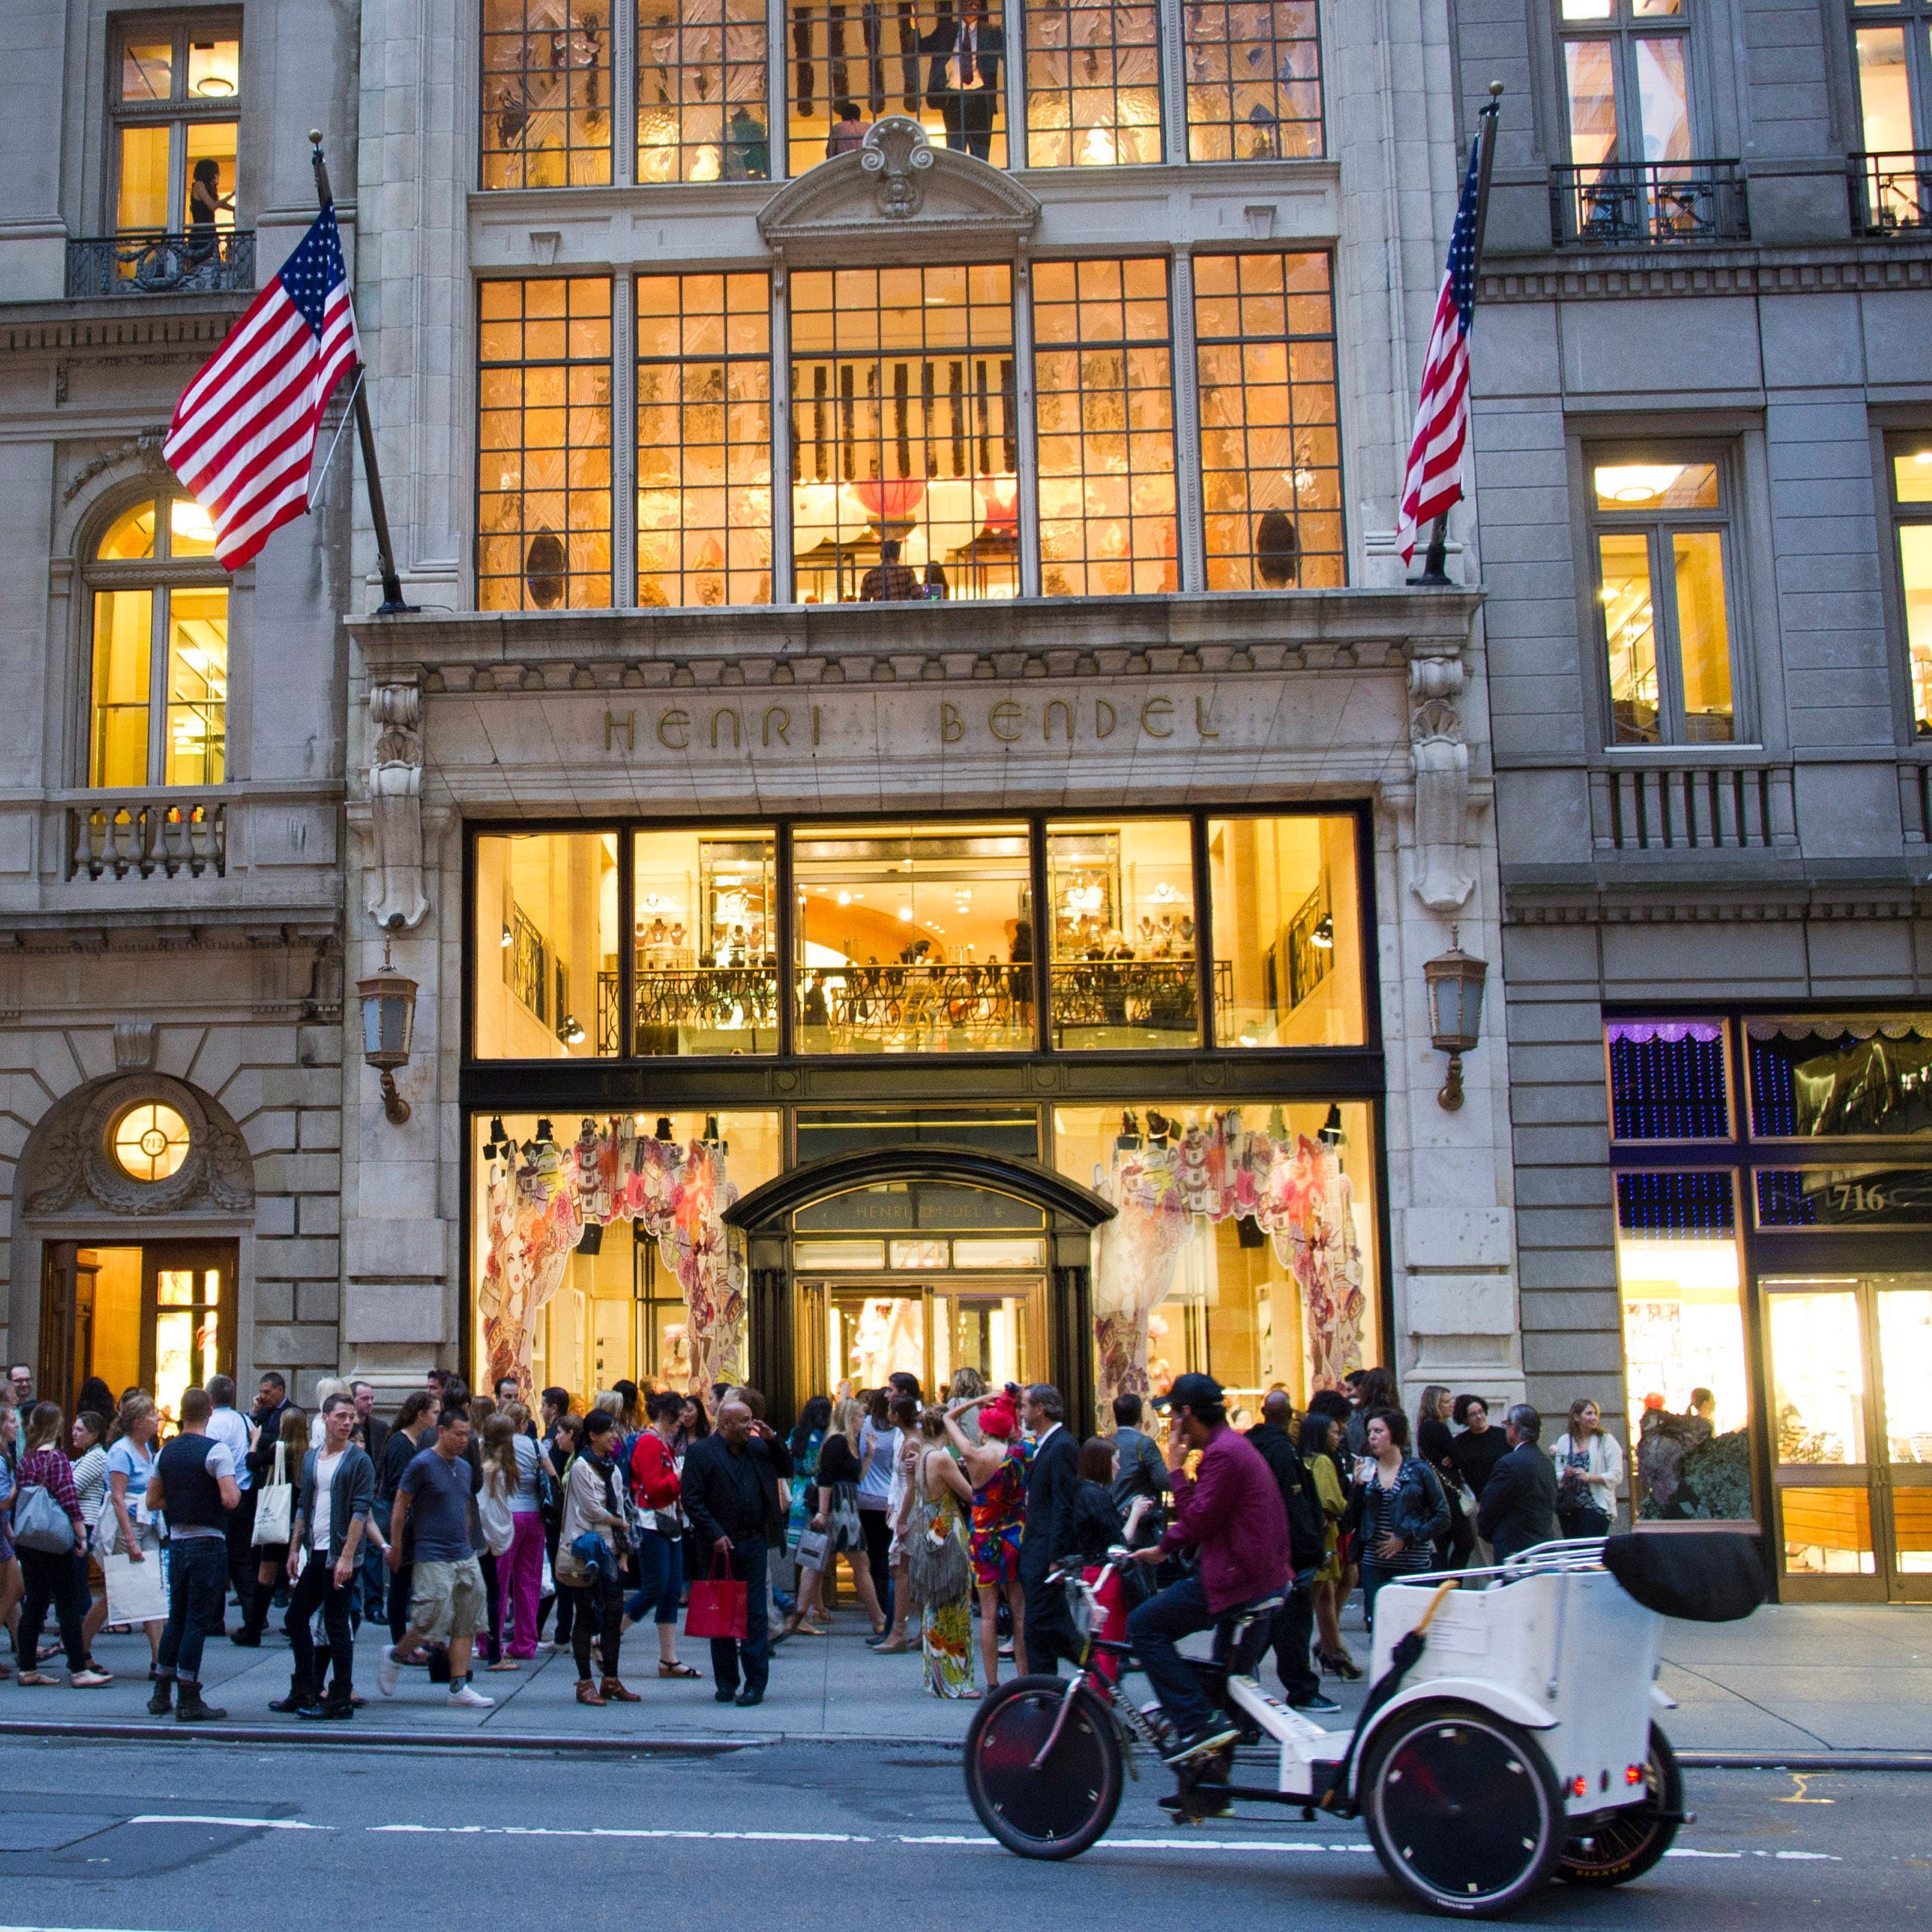 Luxury retailer Henri Bendel is closing its doors after 123 years